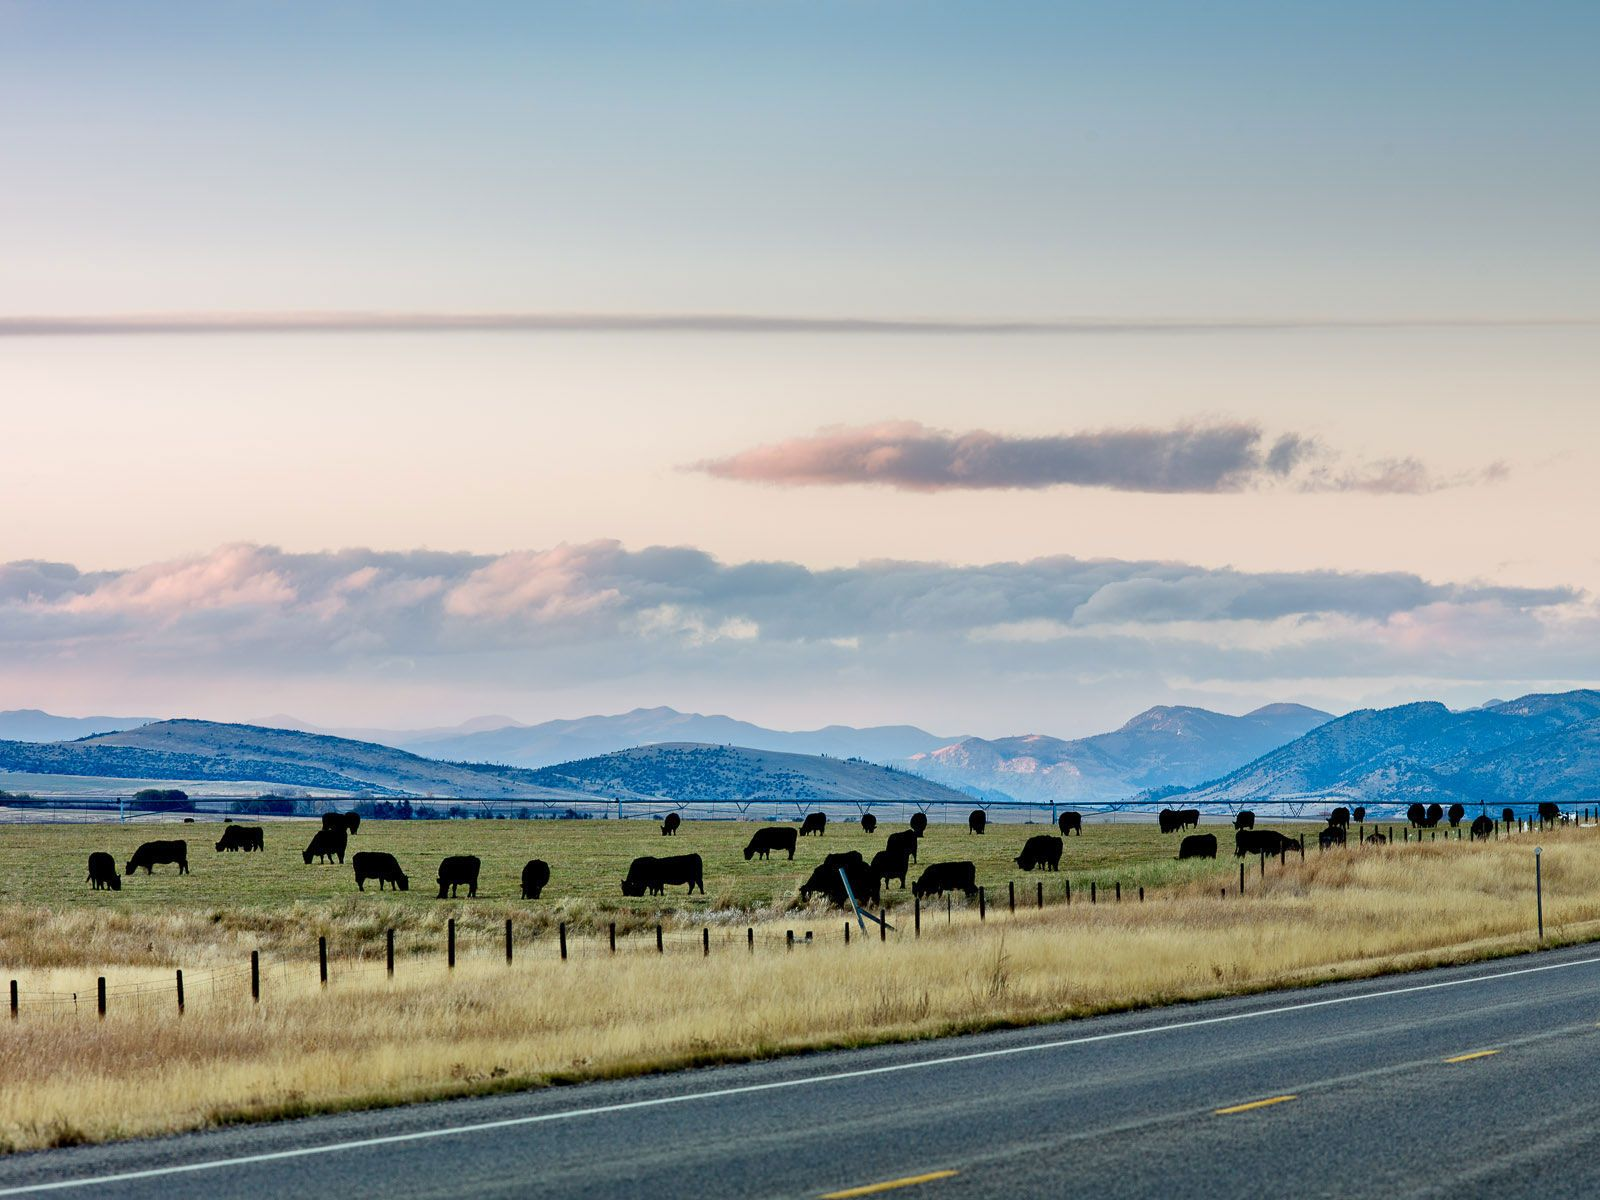 Between Three Forks and Ennis, Montana